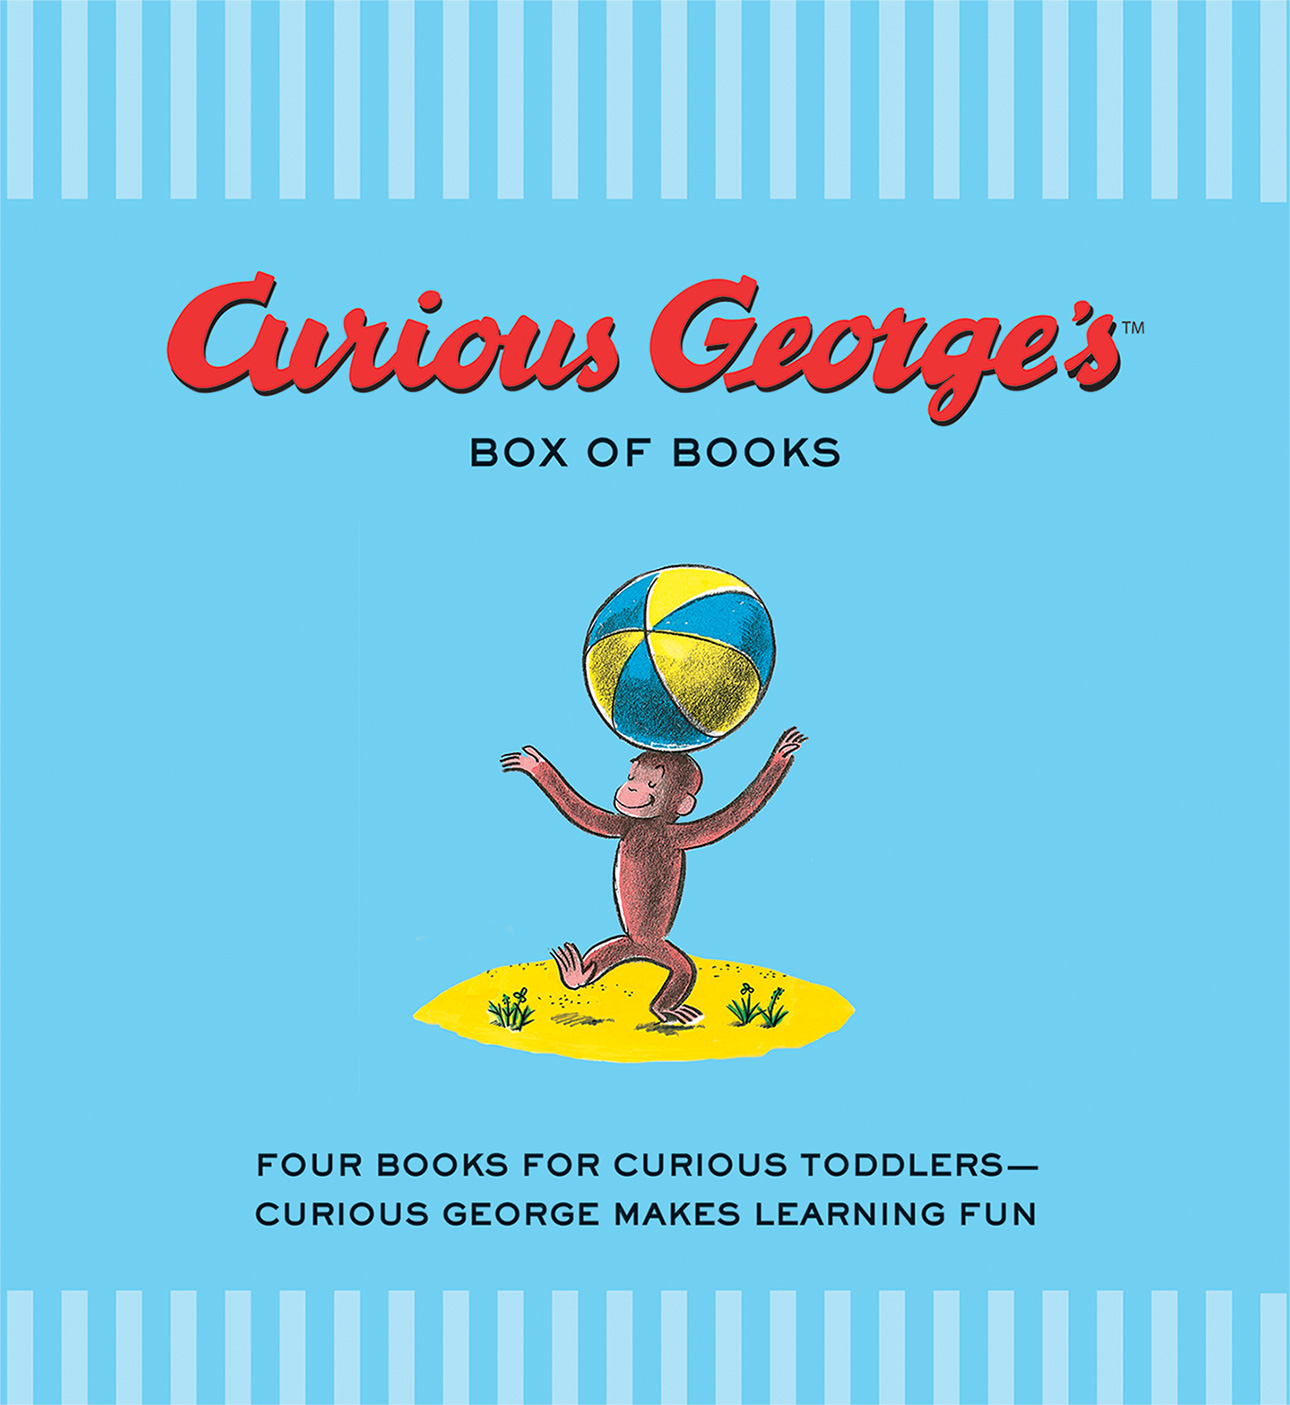 Curious-George's-Box-of-Books_Rey_9781328798954_hres.jpg